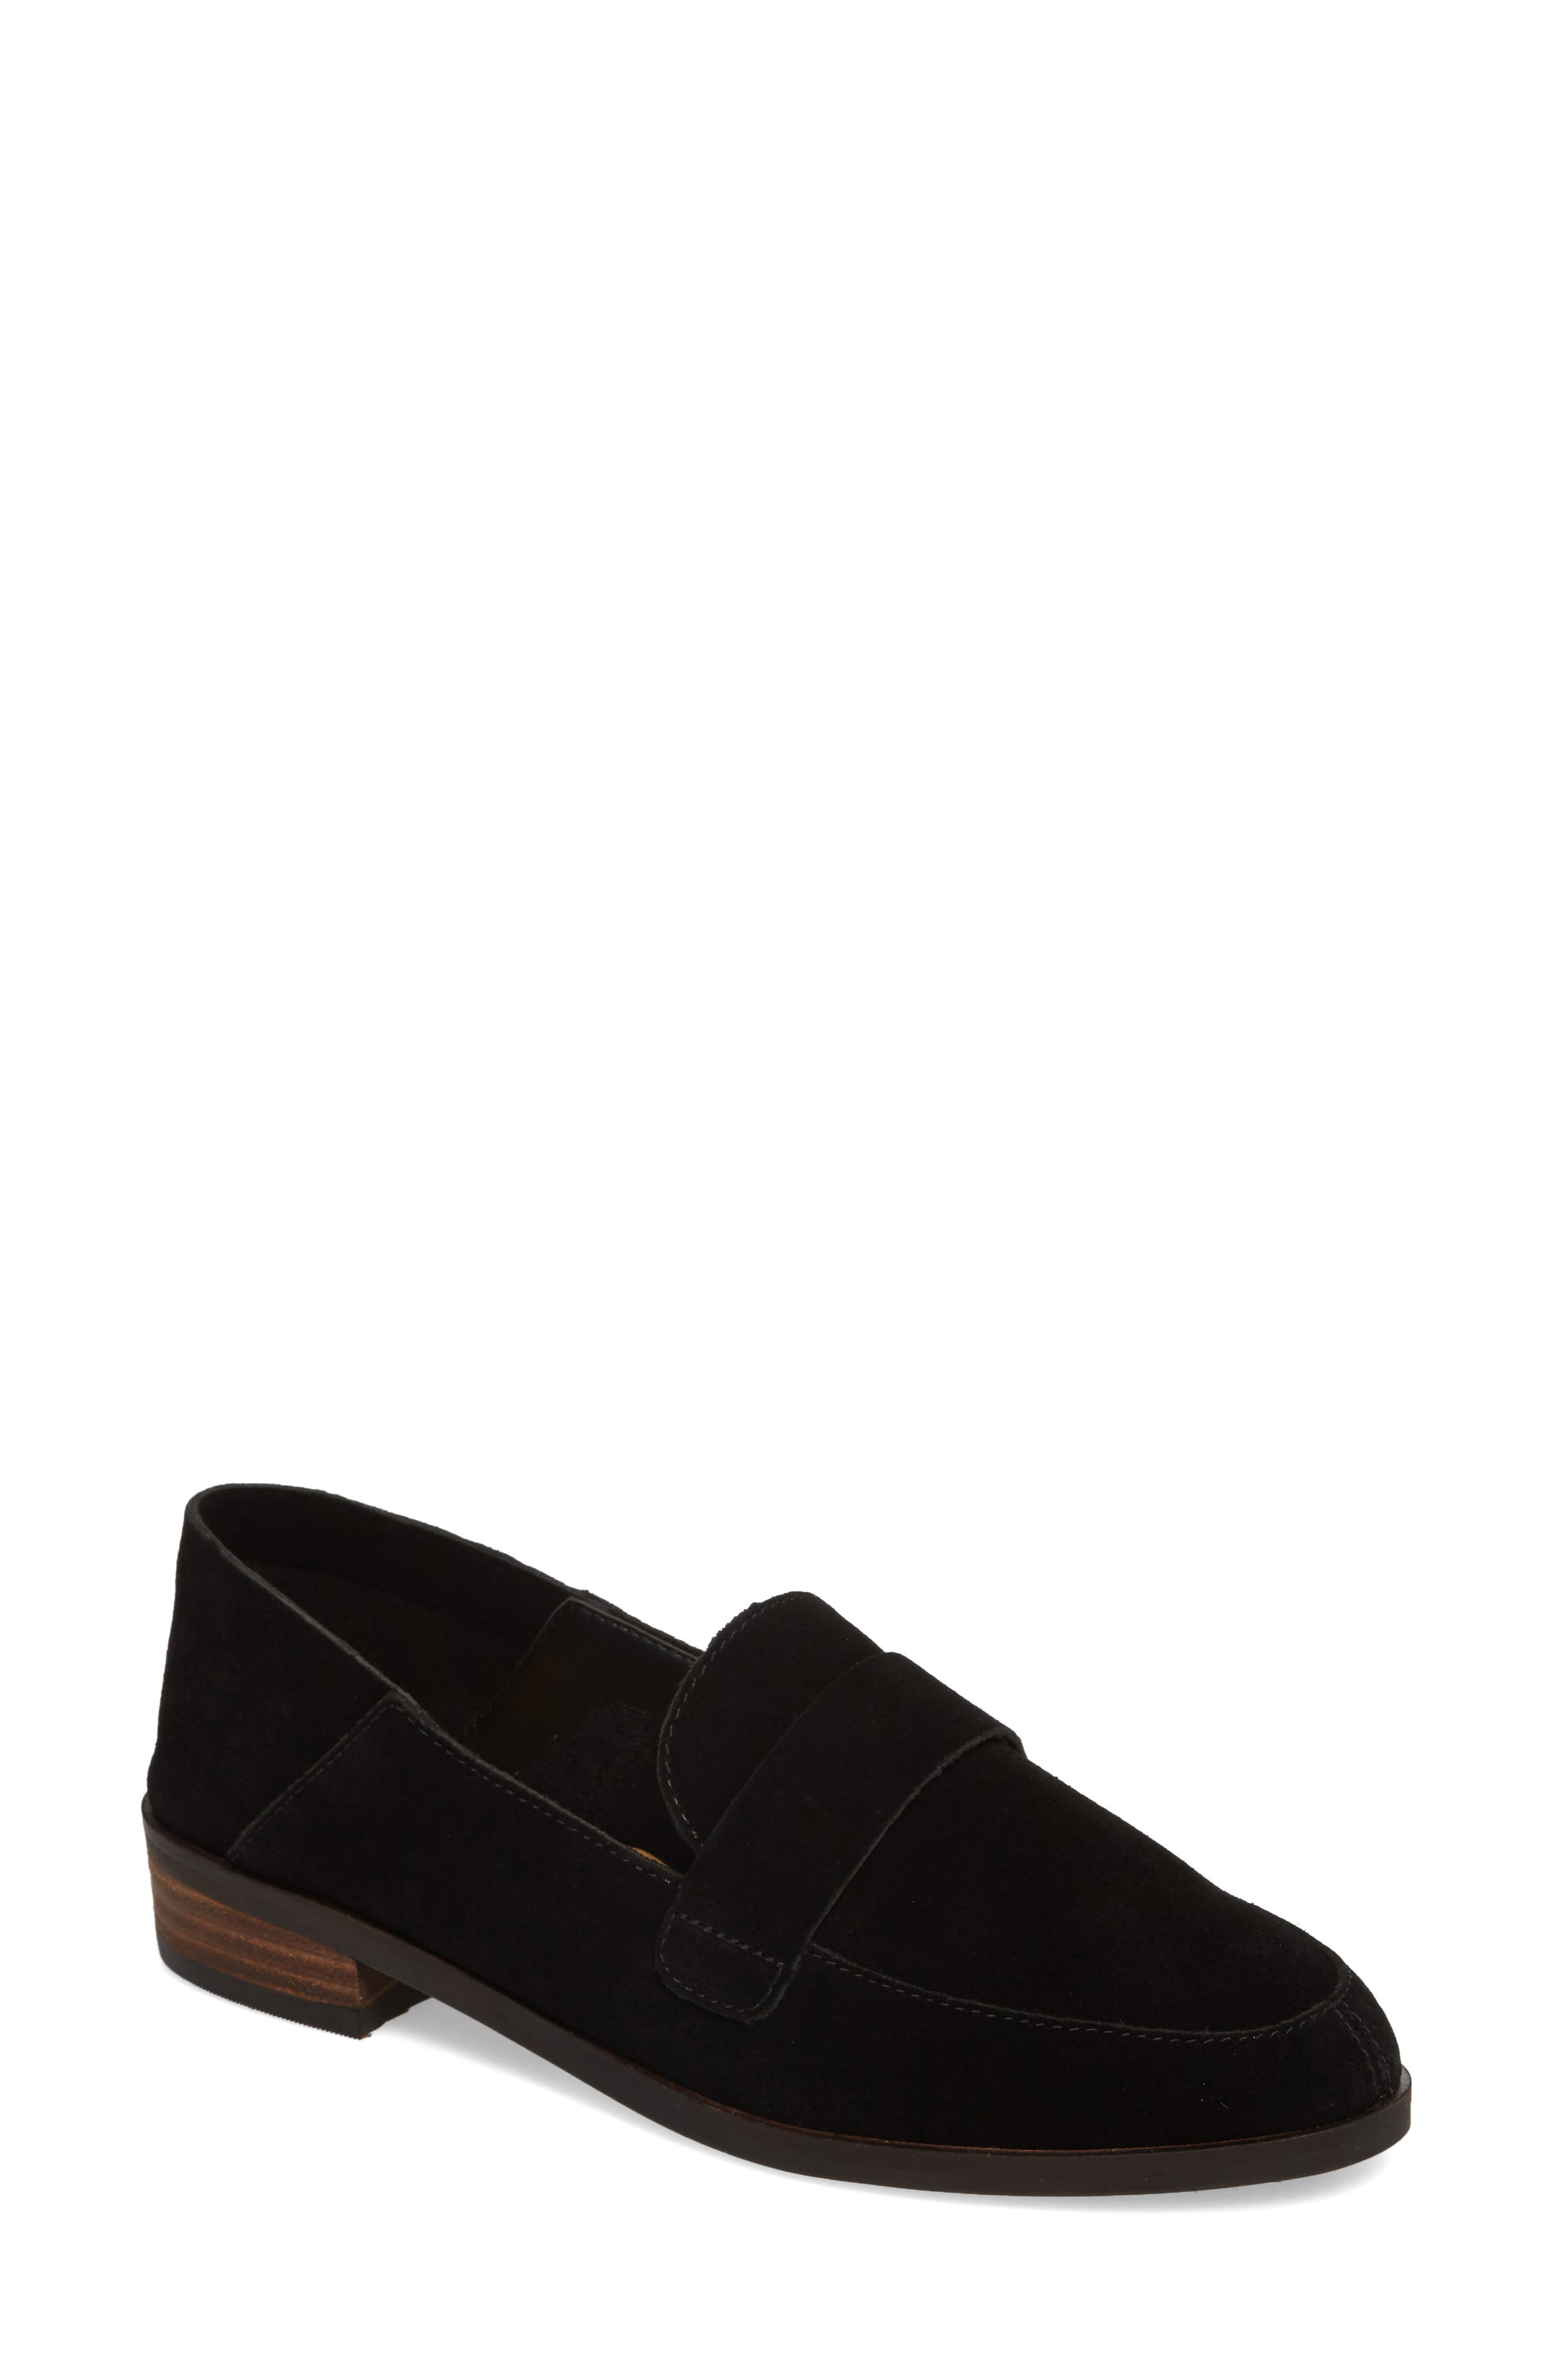 Chennie Loafer,                             Main thumbnail 1, color,                             001